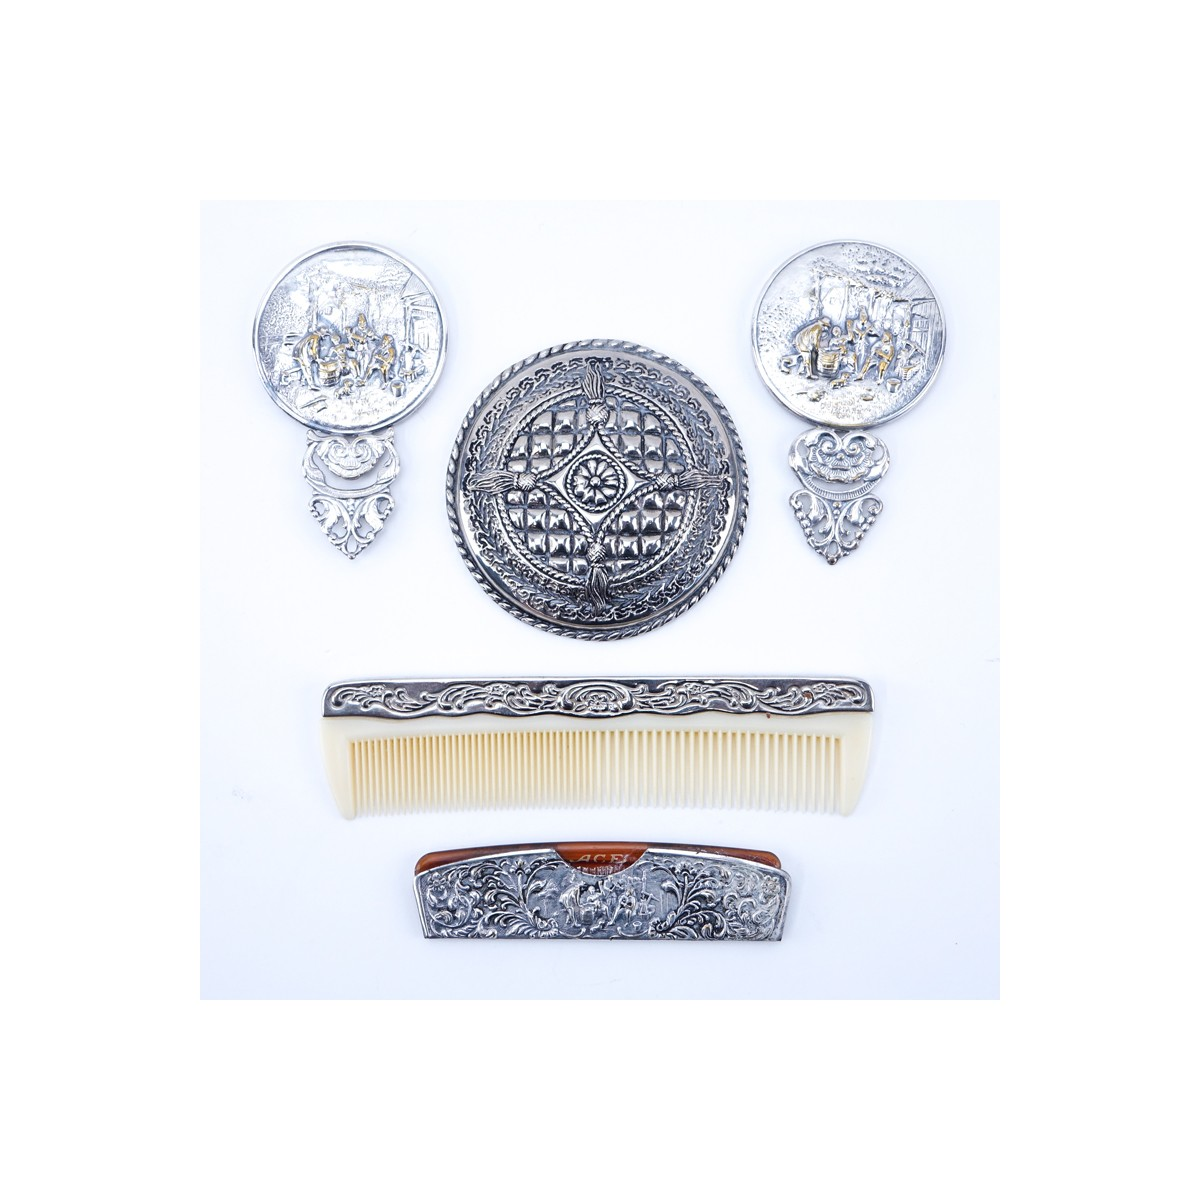 Collection of Five (5) Repousse Silver Plated Vanity Items. Includes: two combs and three mirrors.